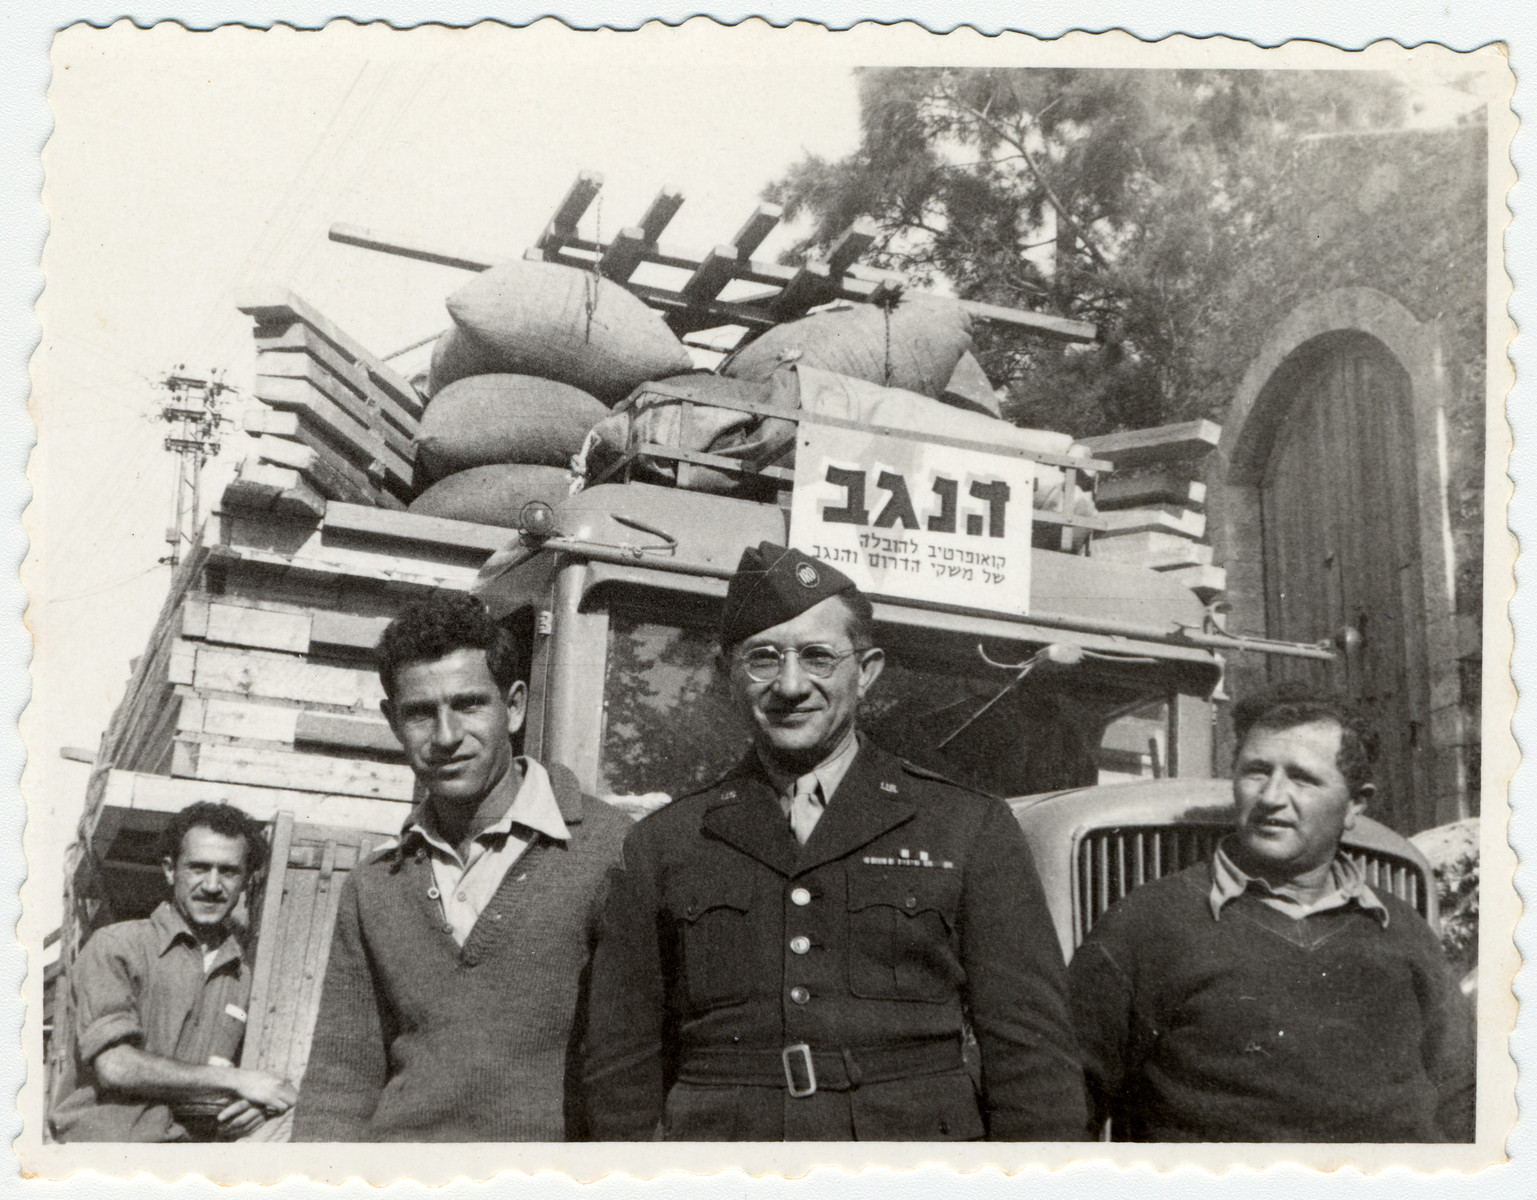 UNNRA director Mordecai Schwartz poses in front of a truck loaded with bundles and lumber to resettle Jewish displaced persons in southern Israel.